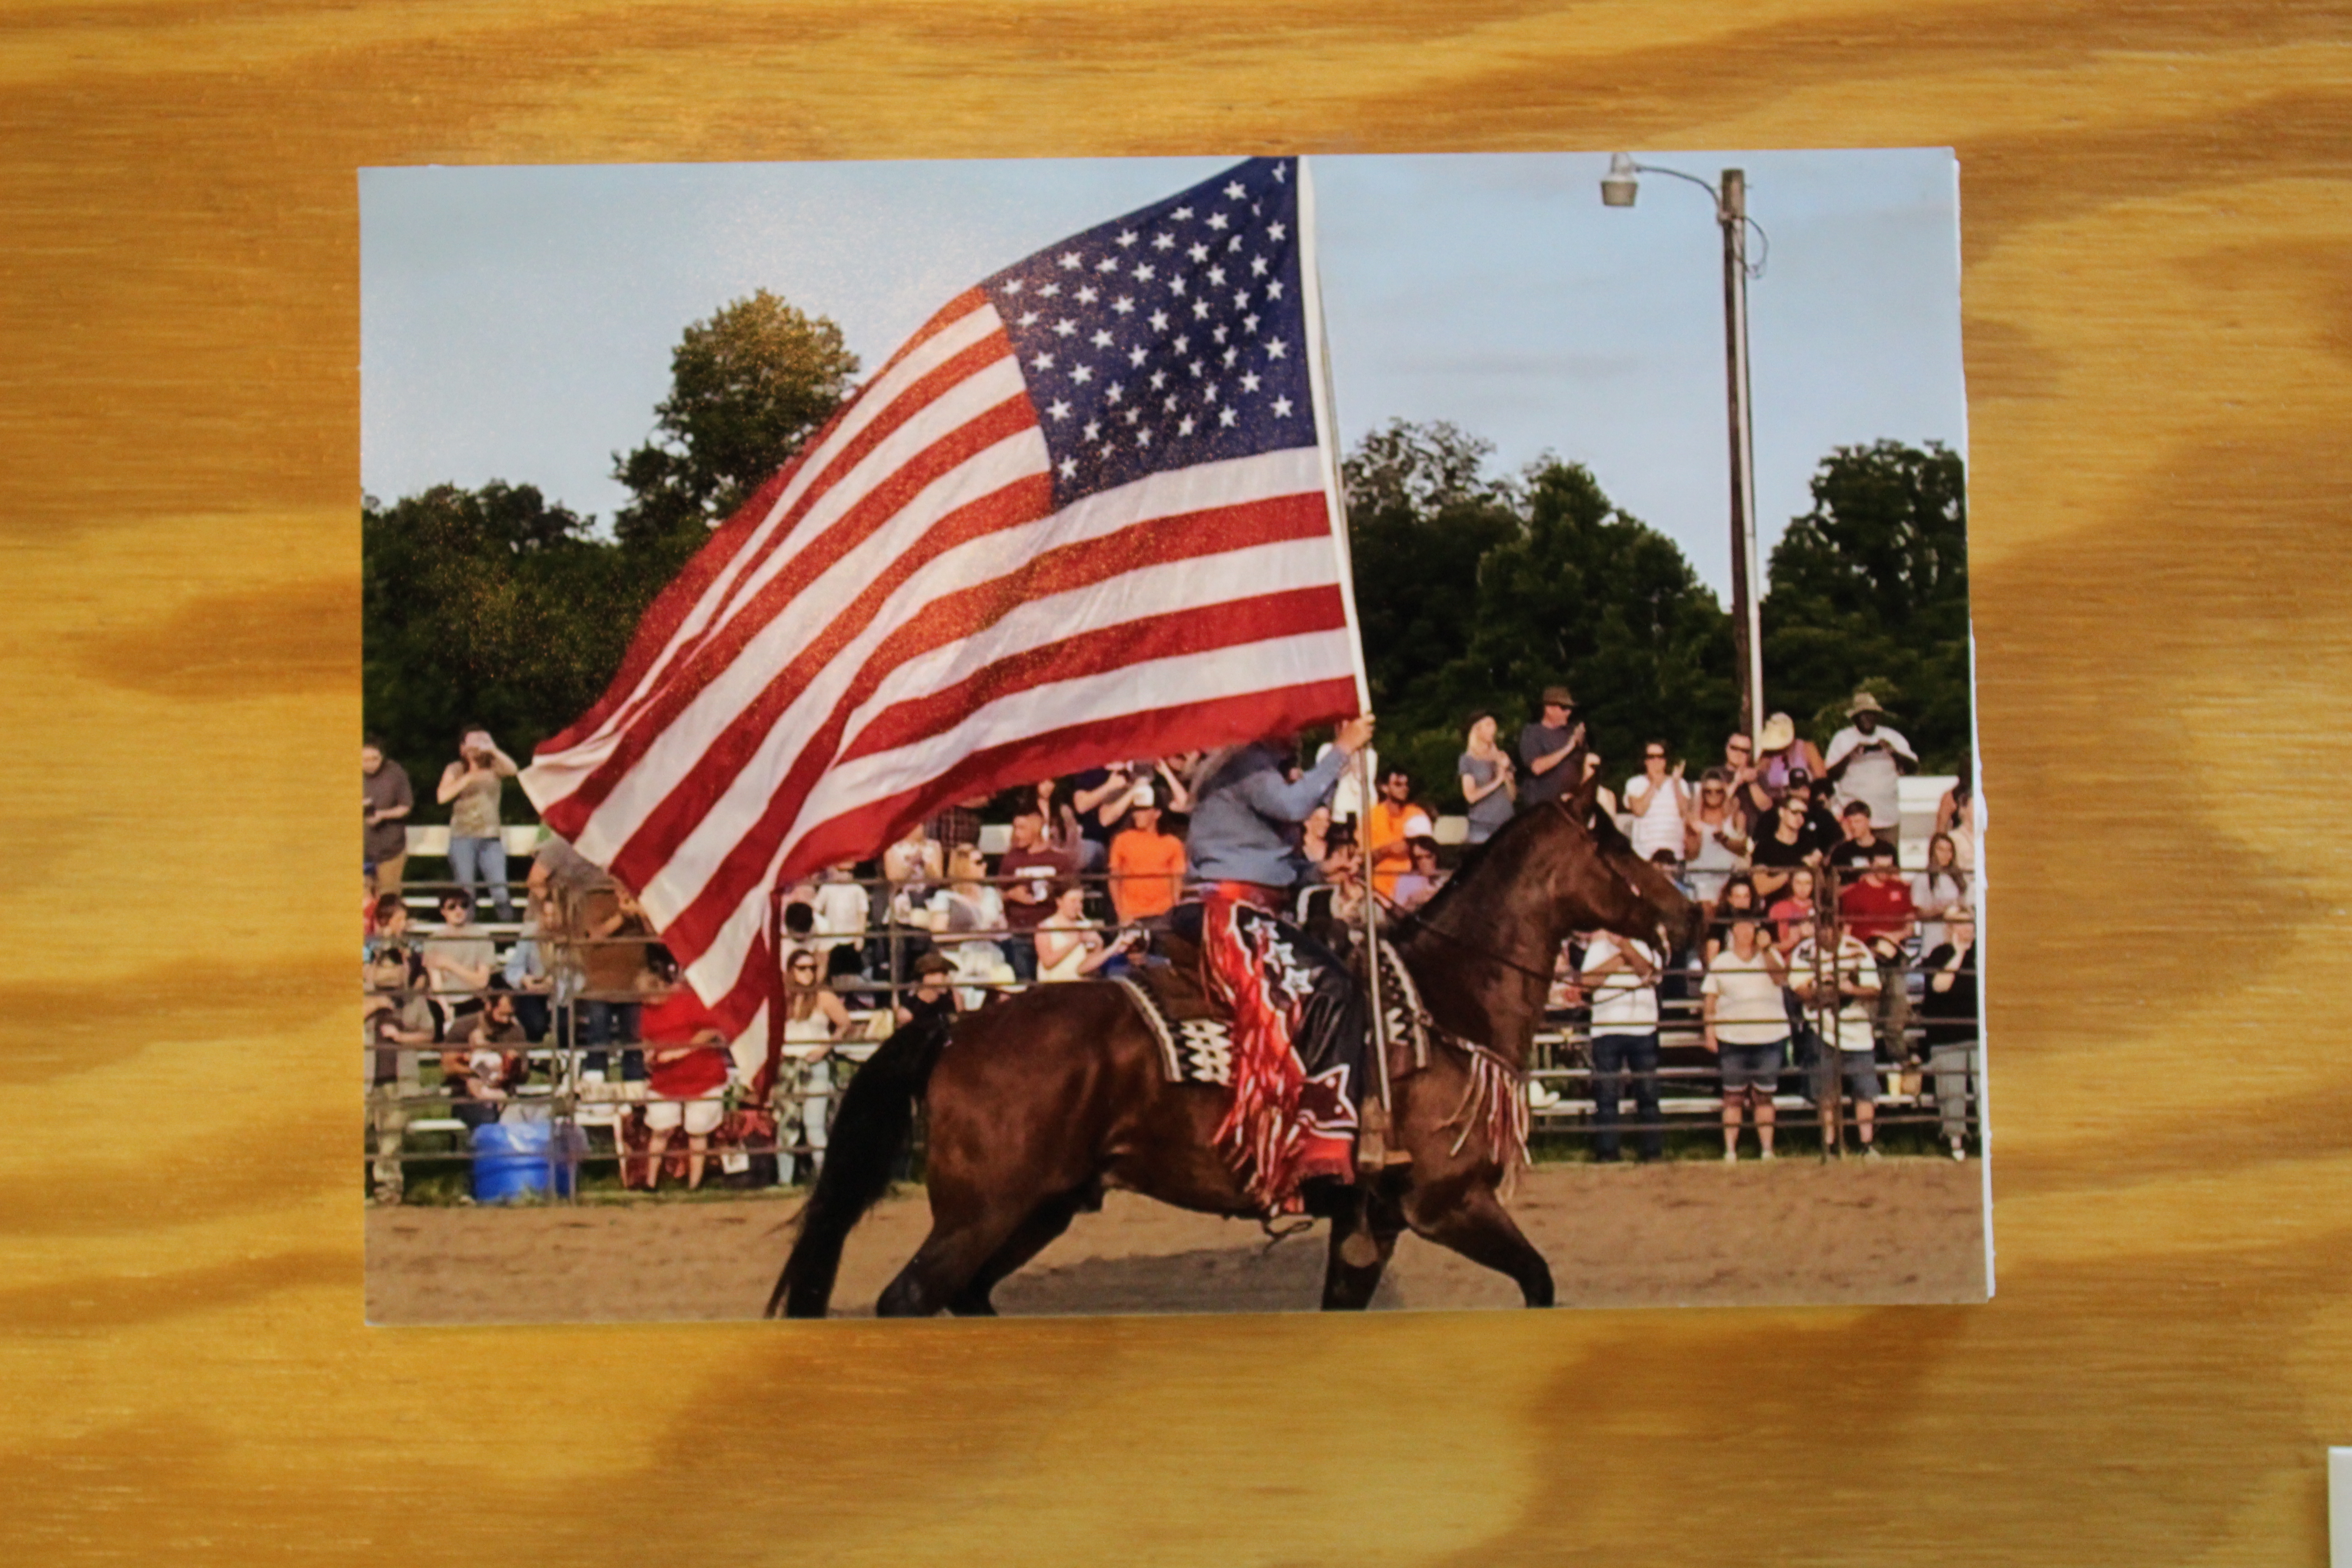 Photo of a man on horse carrying a flag